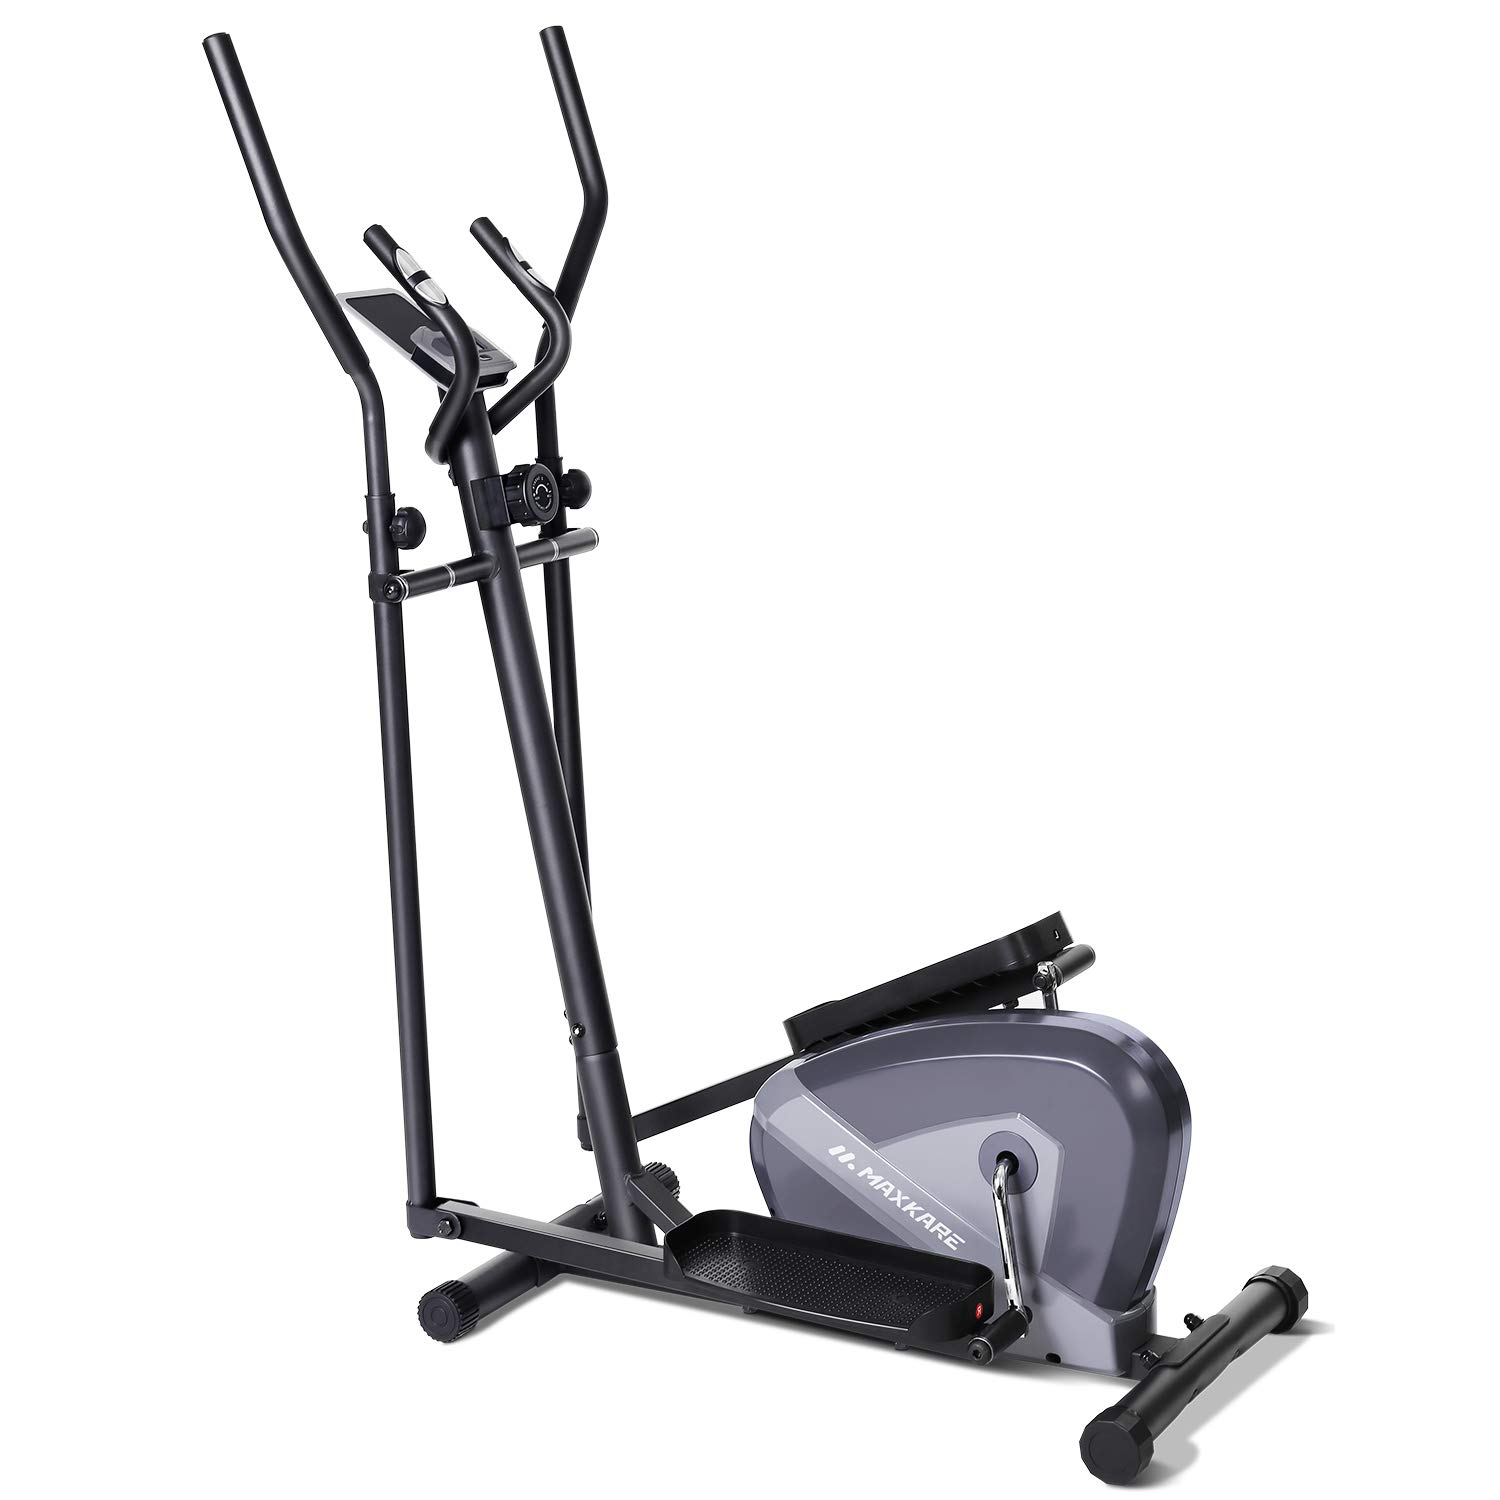 Amazon Com Maxkare Exercise Bike Cardio Training Elliptical Trainers Portable Upright Fitness Workout Bike Machine 8 Level Magnetic Resistance Lcd Monitor Heart Rate Monitor Quiet Driven Calories Burned Sports Outdoors